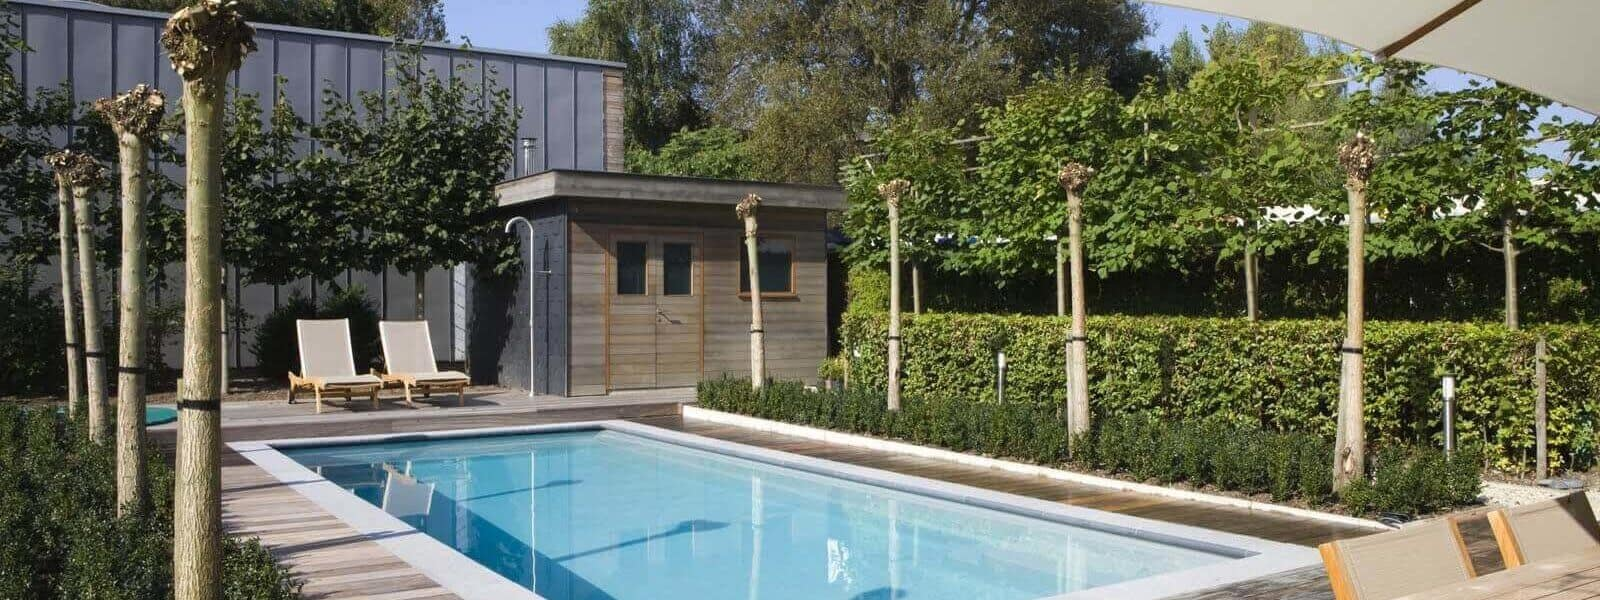 Pool with Poolhouse